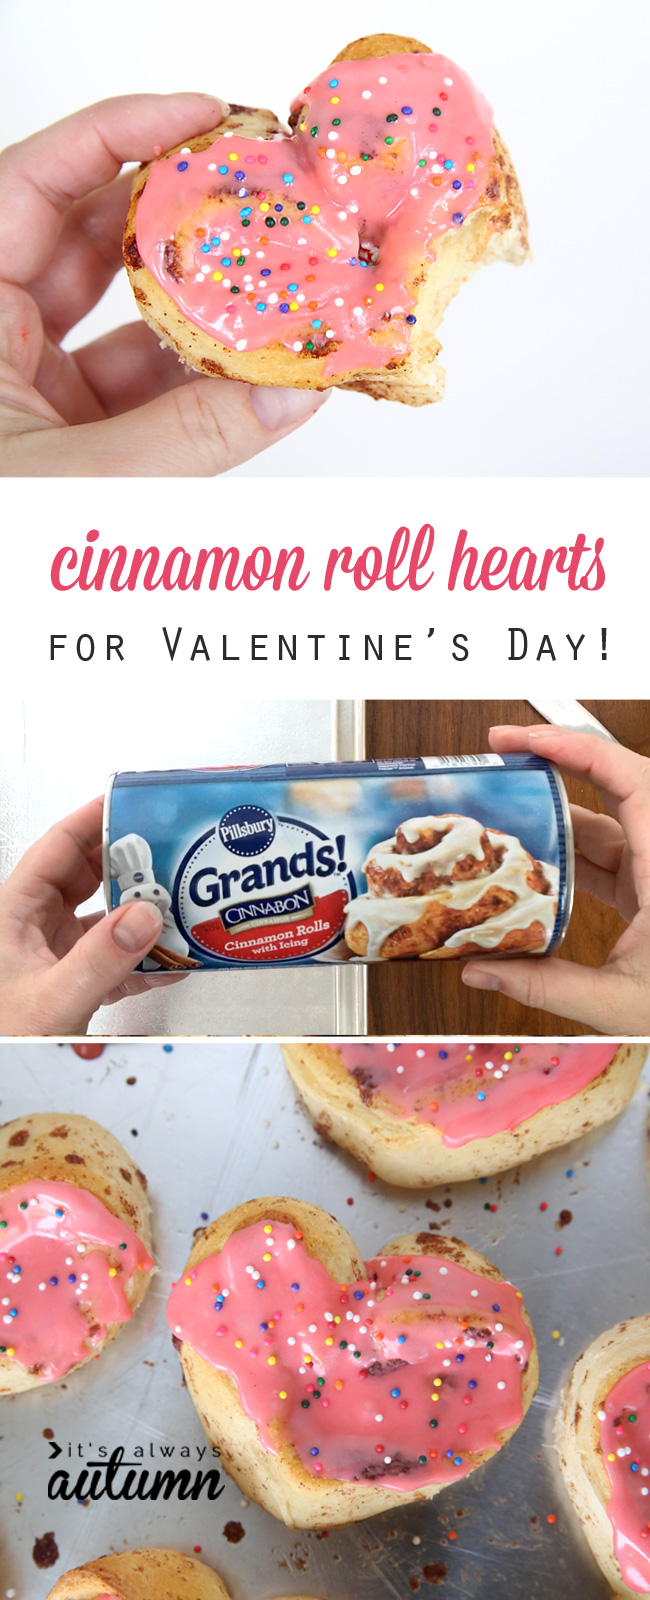 Cinnamon rolls in the shape of a heart with pink frosting and sprinkles; roll of Grands! cinnamon rolls